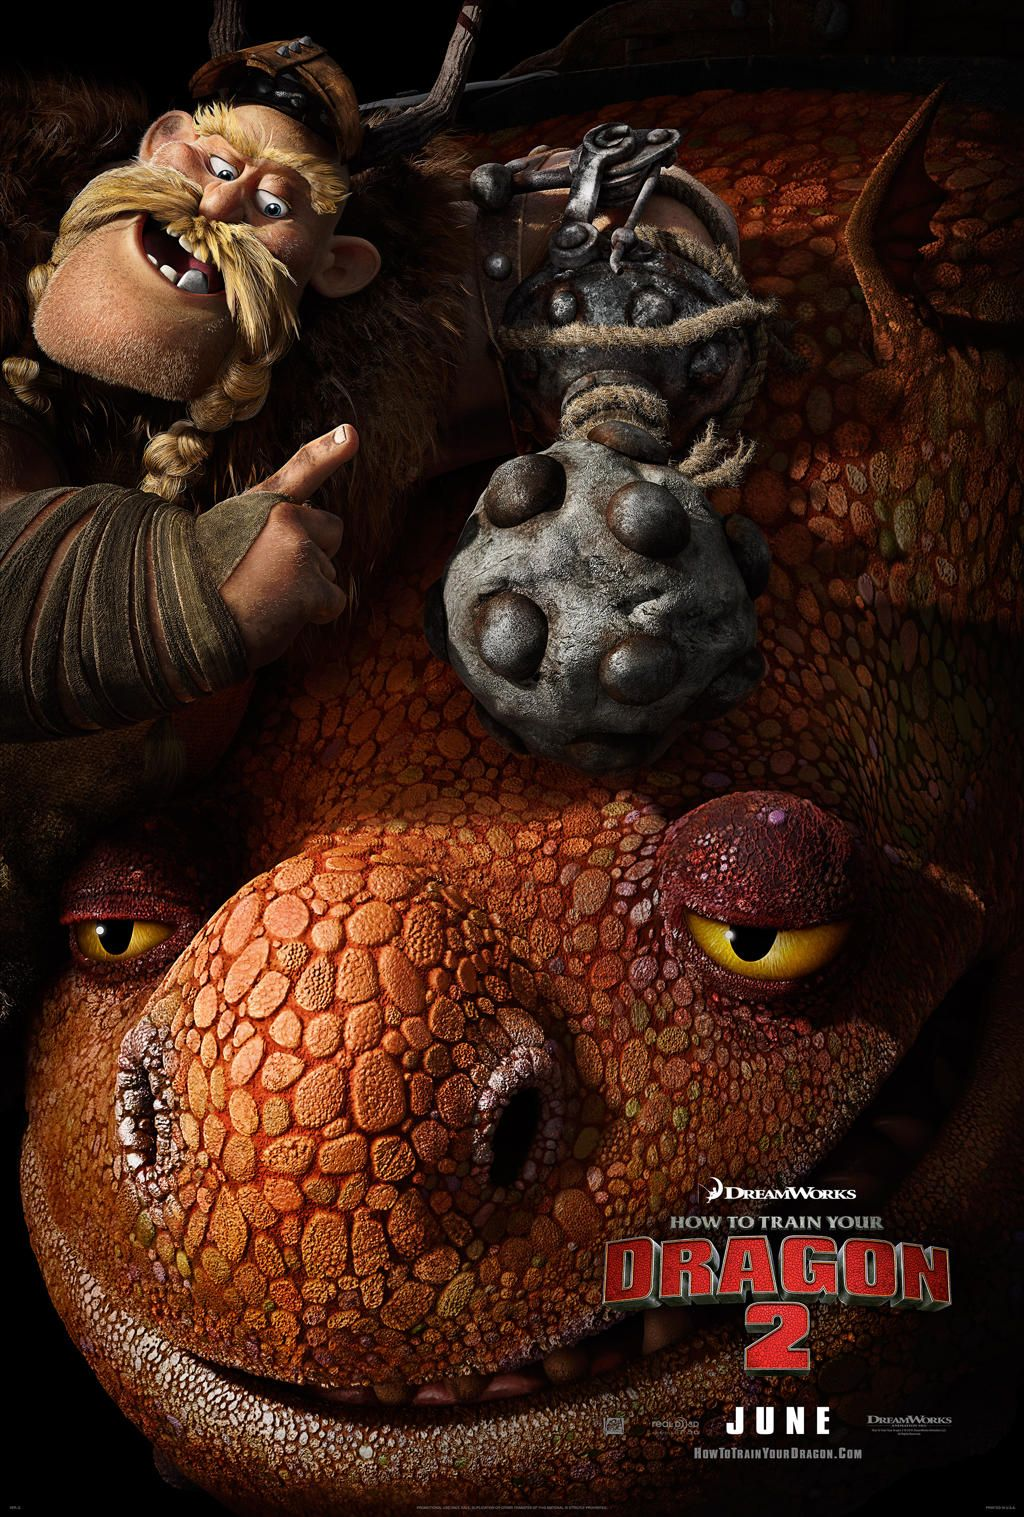 How to train your dragon 2 gobber and his dragon that i forget the how to train your dragon 2 movie stills ccuart Images